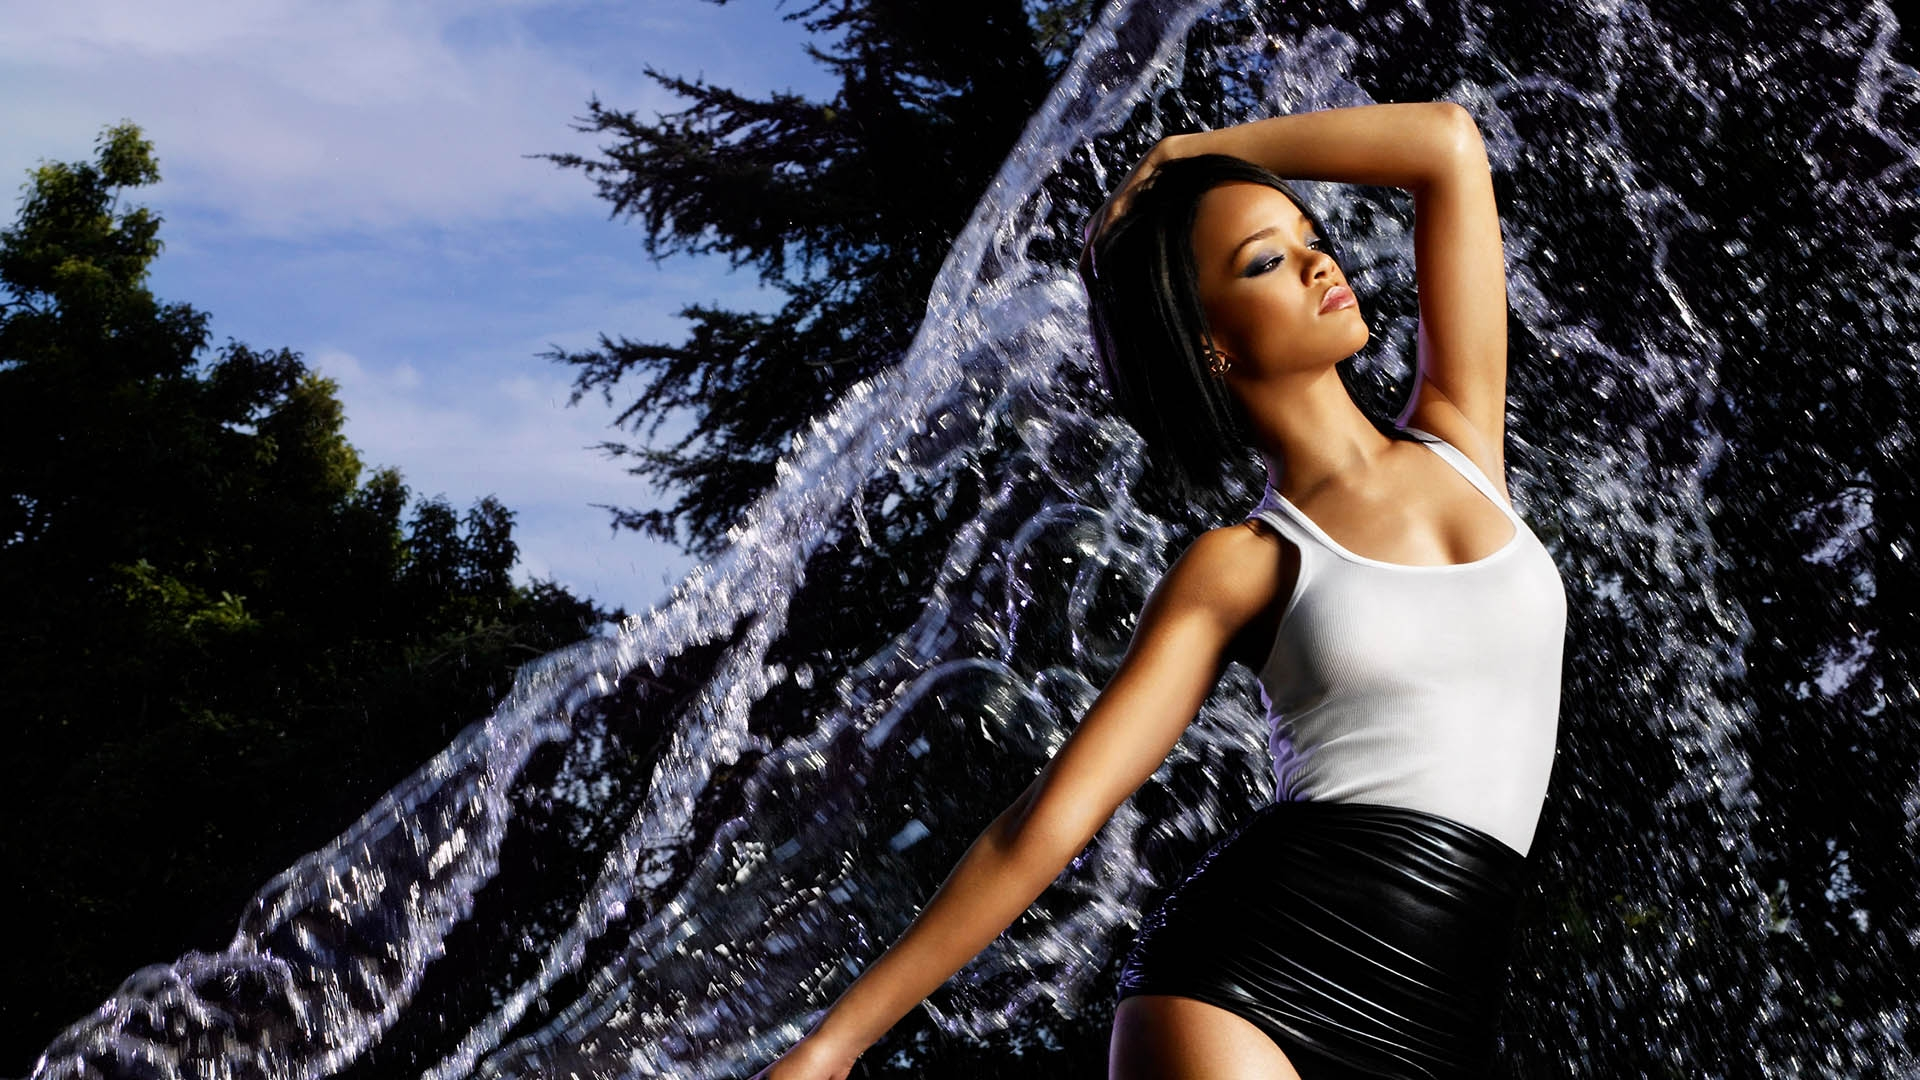 Download Wallpaper 1920x1080 Rihanna Water Sprays Girl